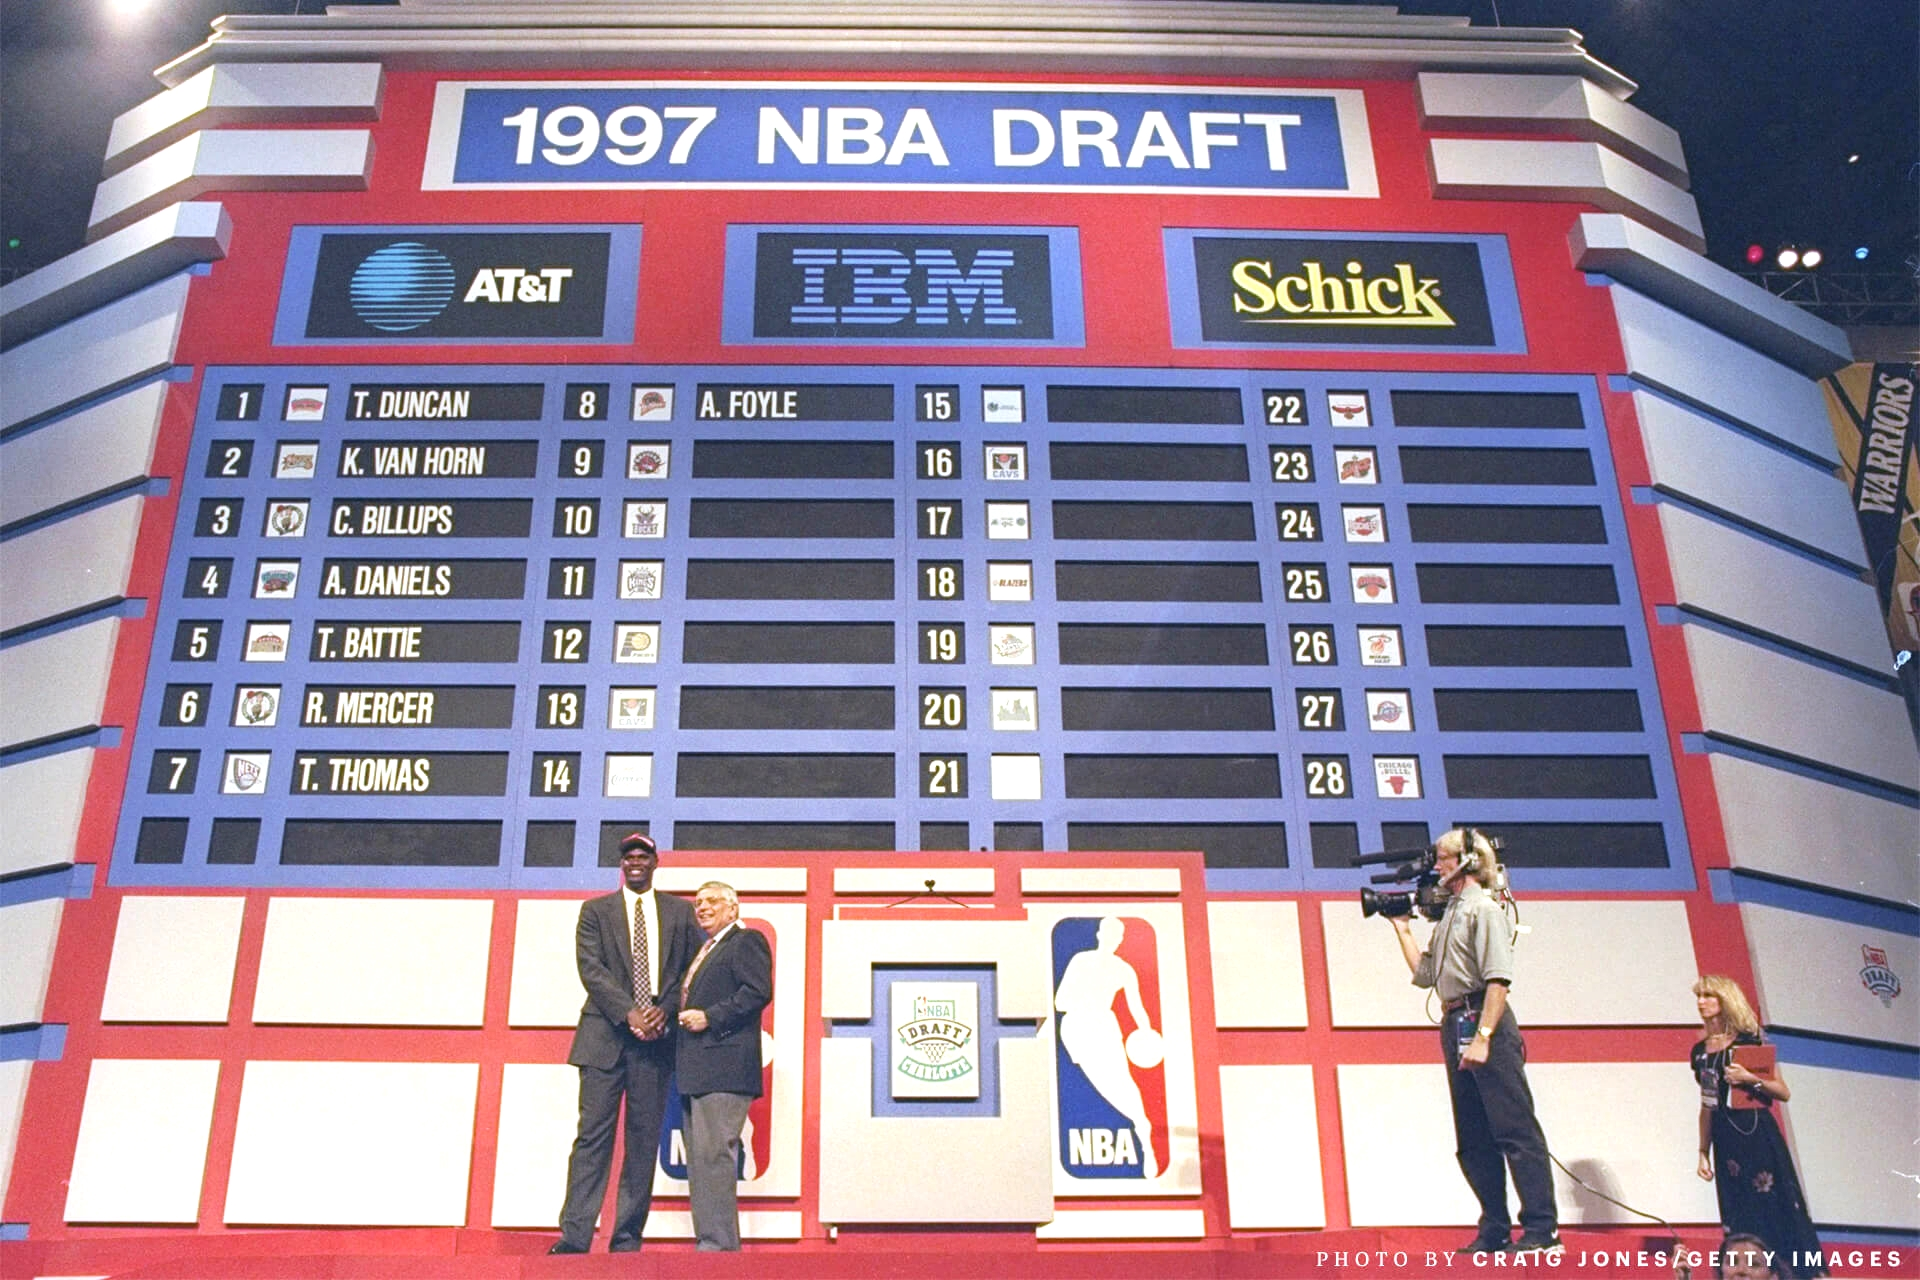 """""""With the 8th pick of the 1997 NBA Draft, the Golden State Warriors select Adonal Foyle from Colgate University.""""(photo by Craig Jones)"""